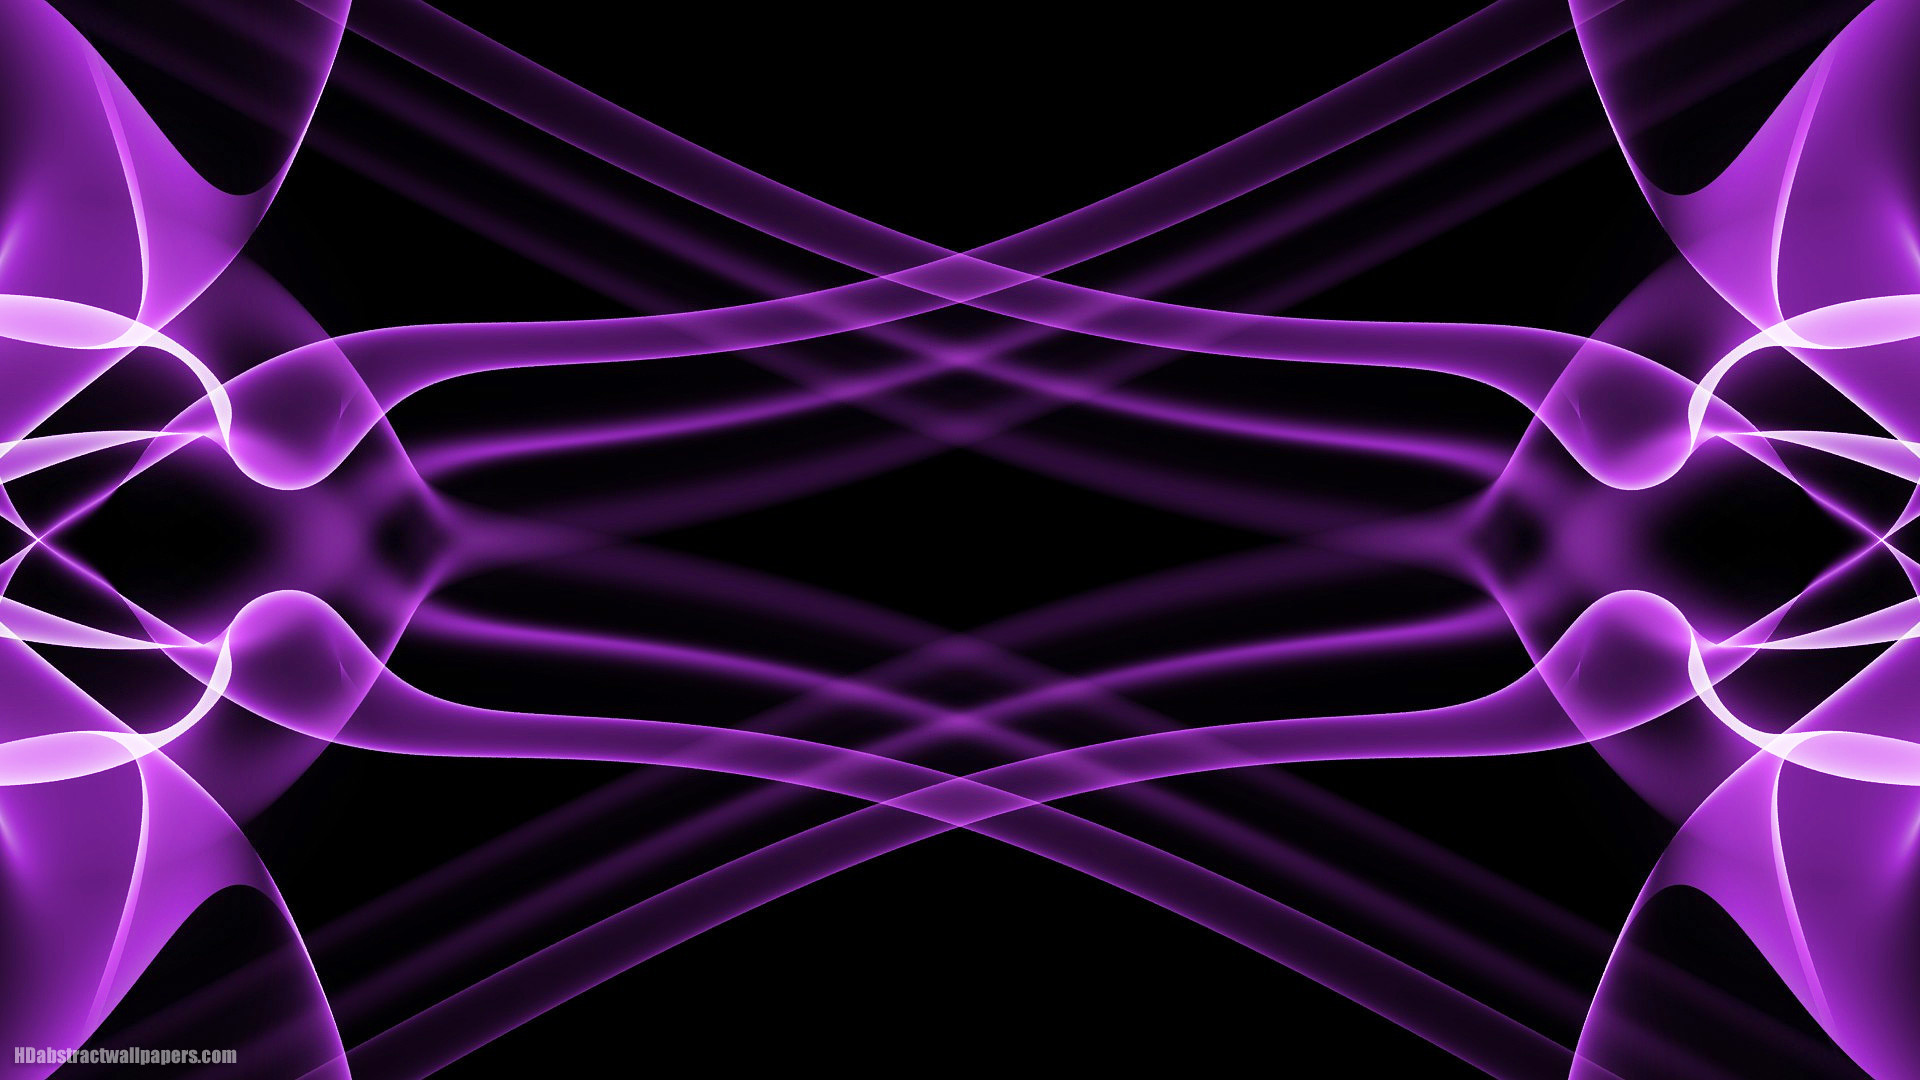 1920x1080 Abstract purple wallpaper with a black background. In HD quality resolution  .